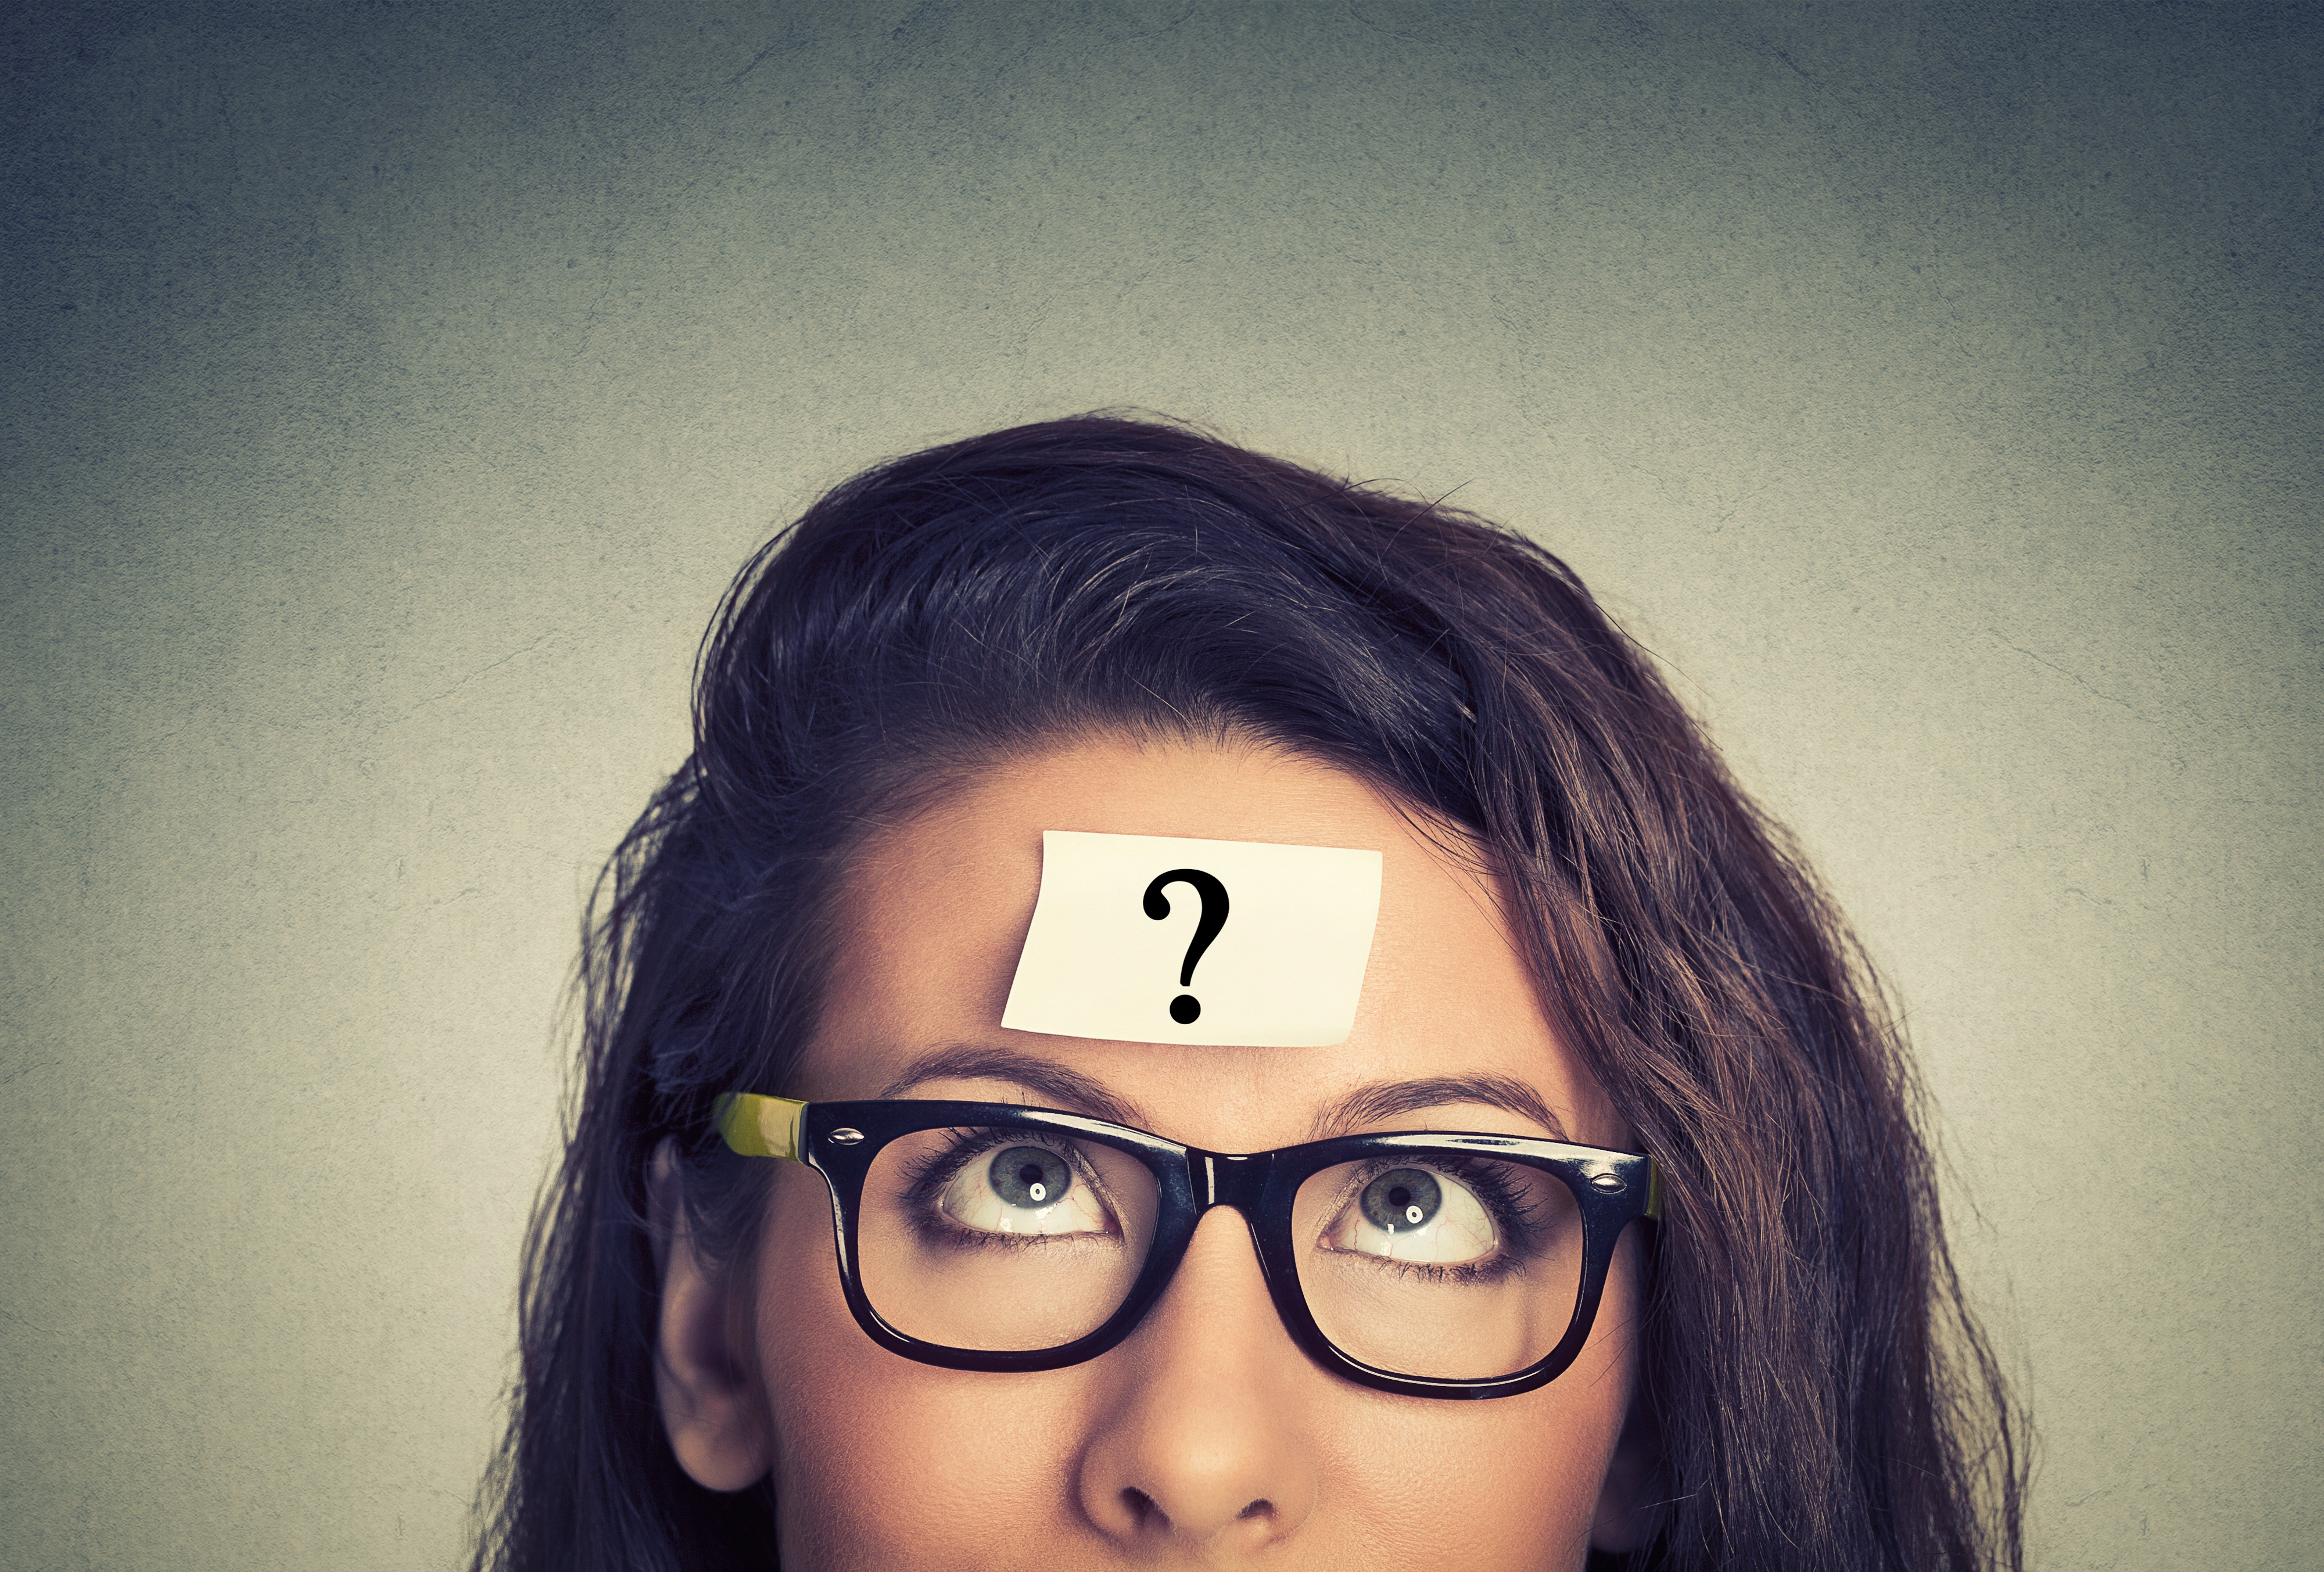 Woman with question mark on forehead.jpg